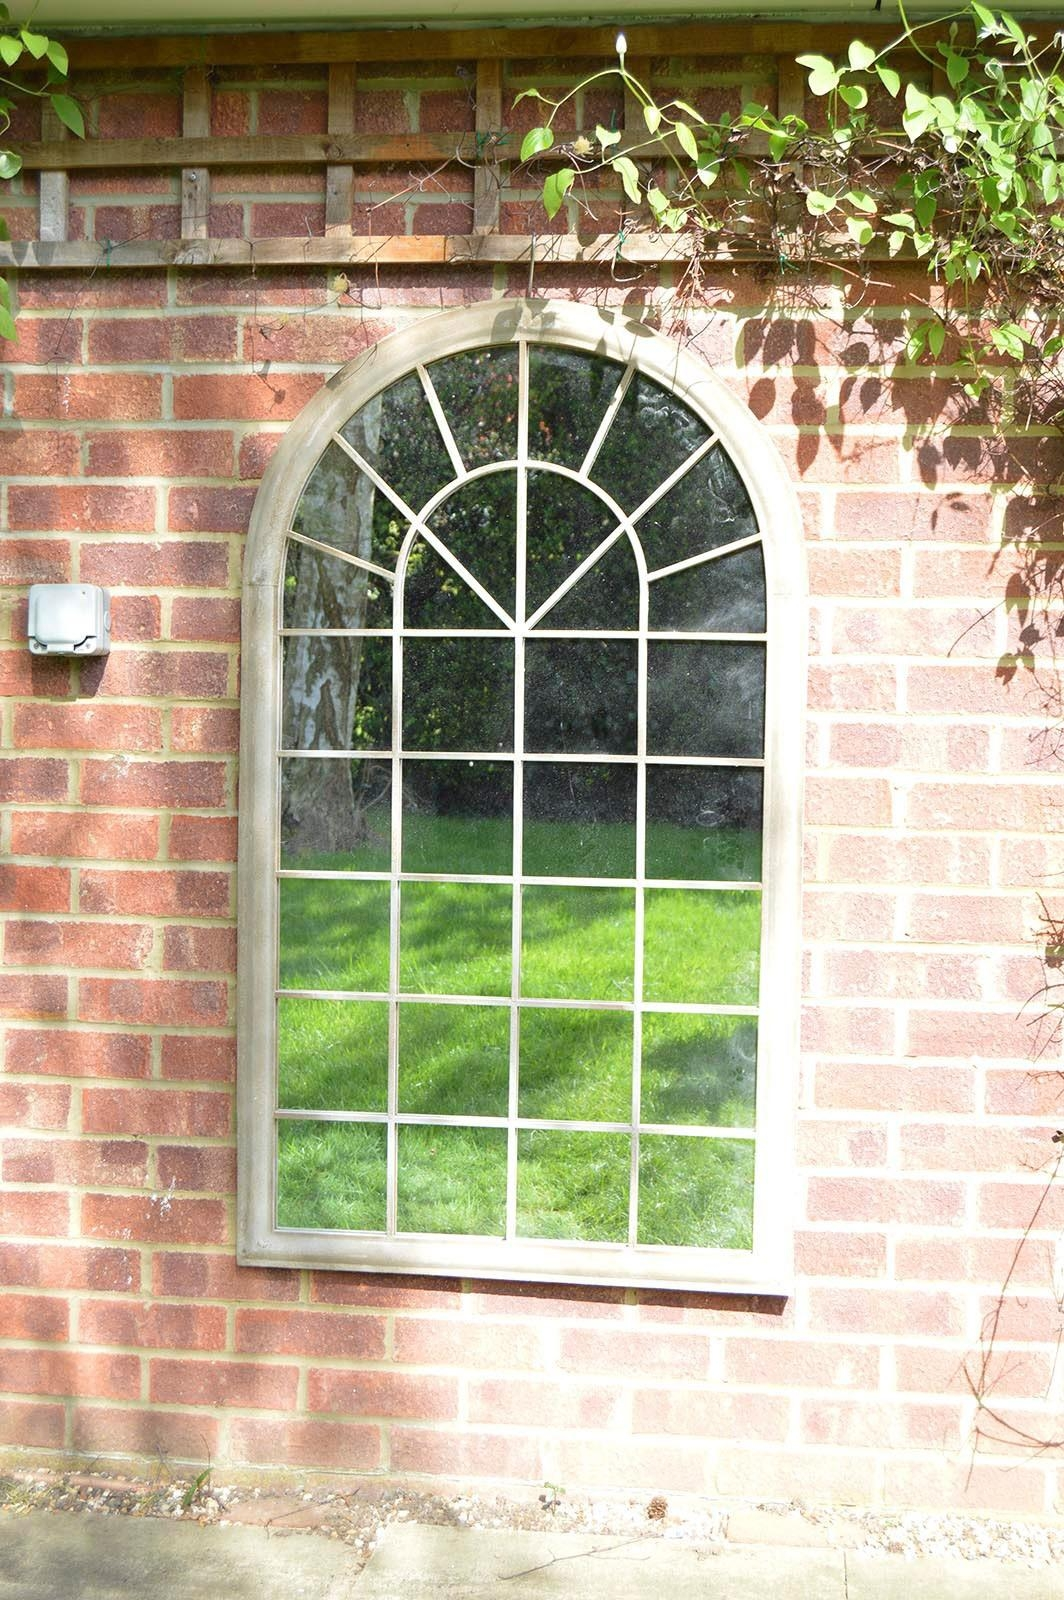 Large Cream Rustic Arched Window Garden Outdoor Mirror New 4Ft3 X 2Ft6 Regarding Garden Mirrors For Sale (Image 14 of 20)